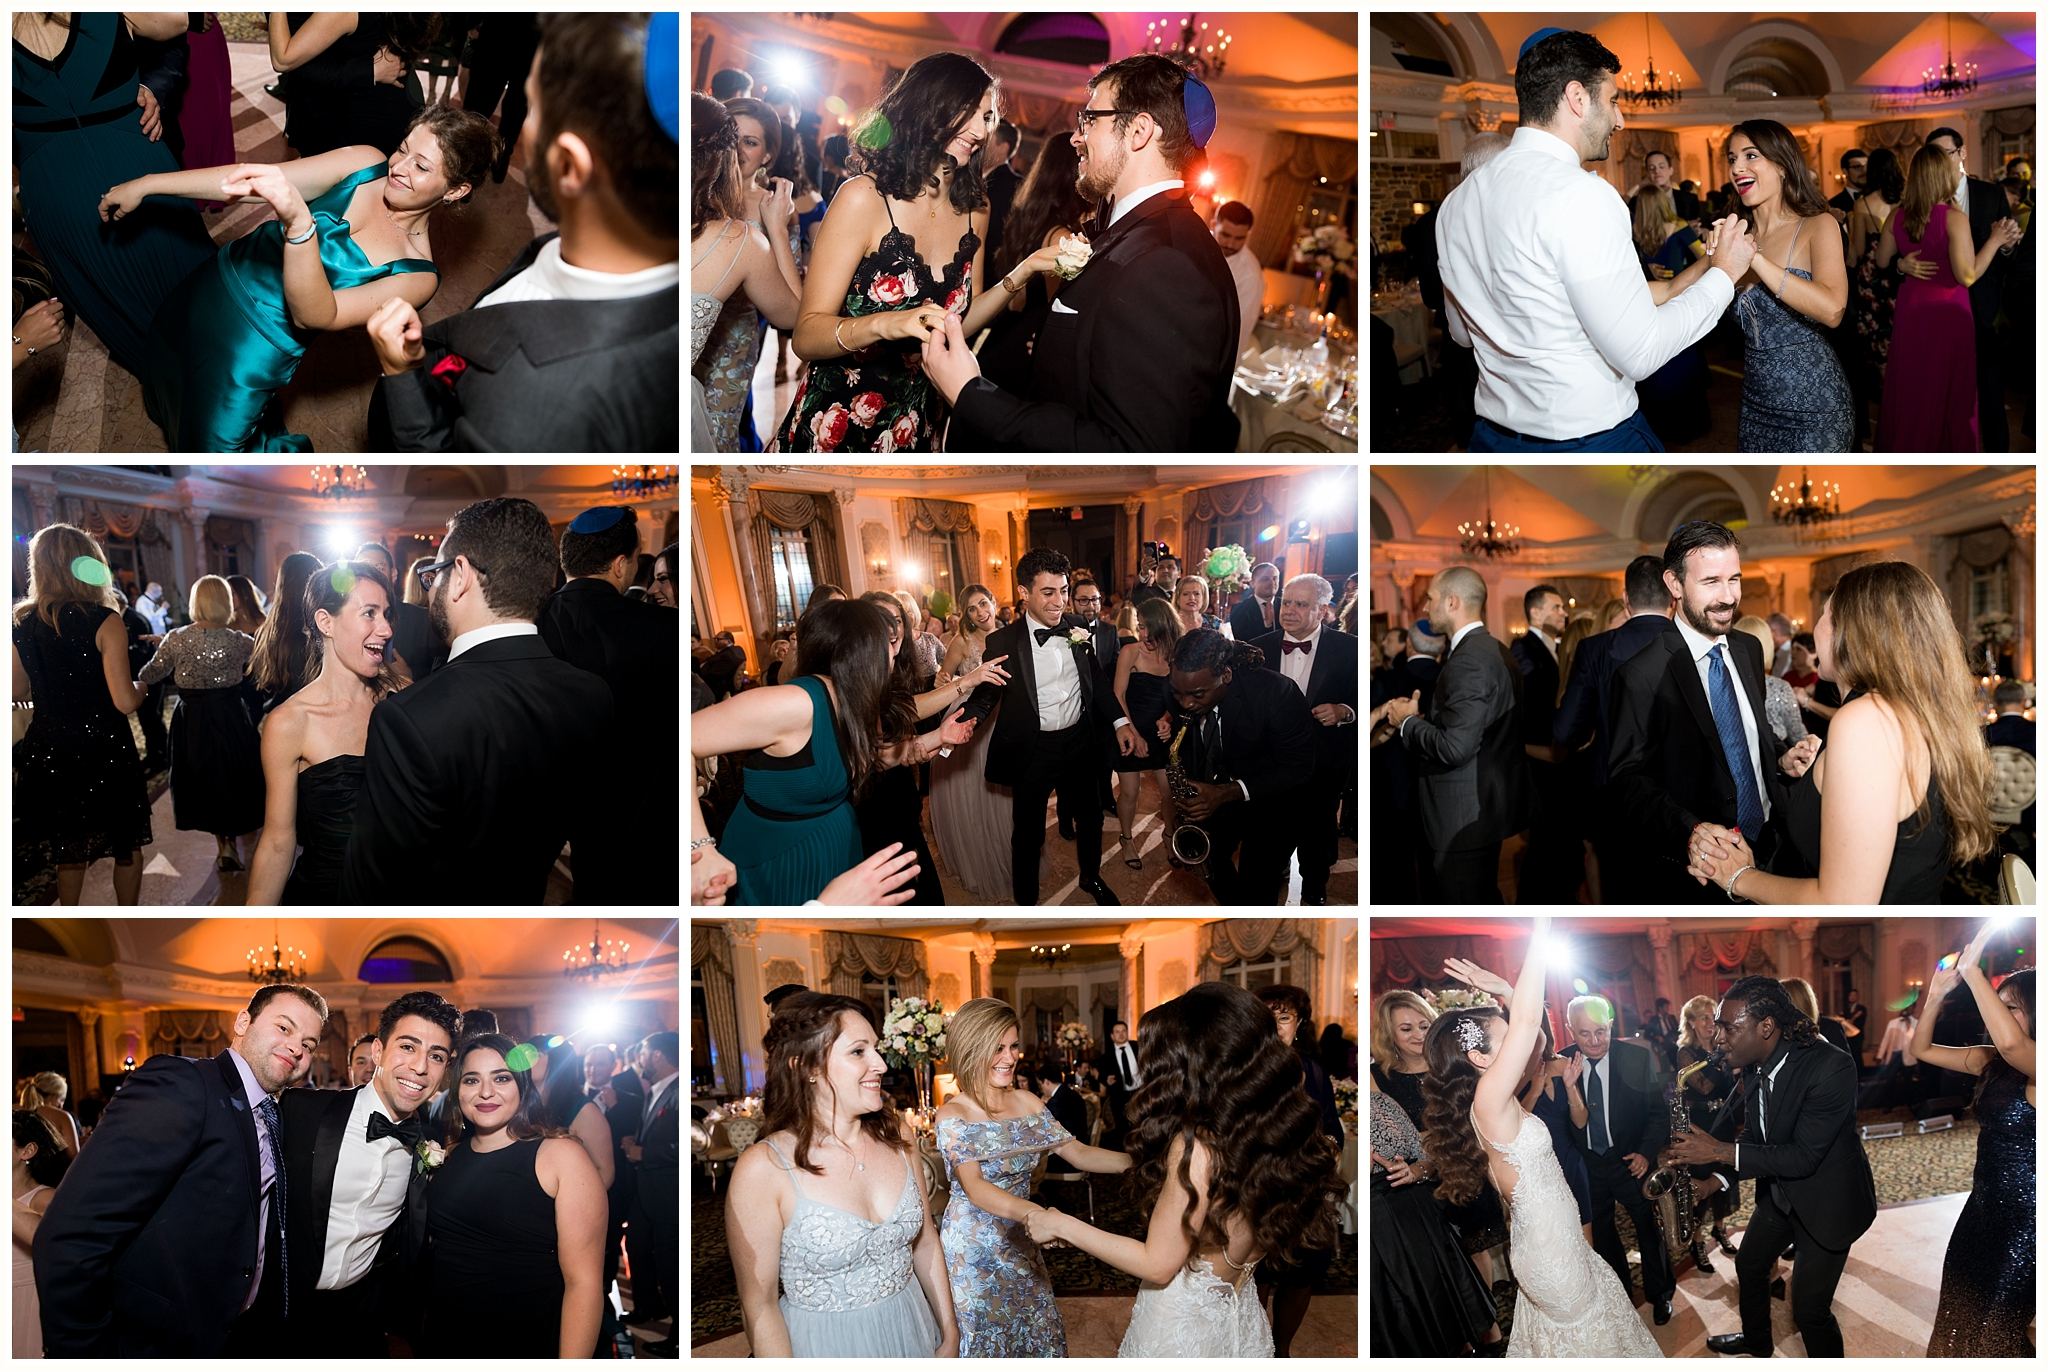 Pleasantdale Chateau Wedding NJ Wedding NYC Wedding Photographer_0056.jpg